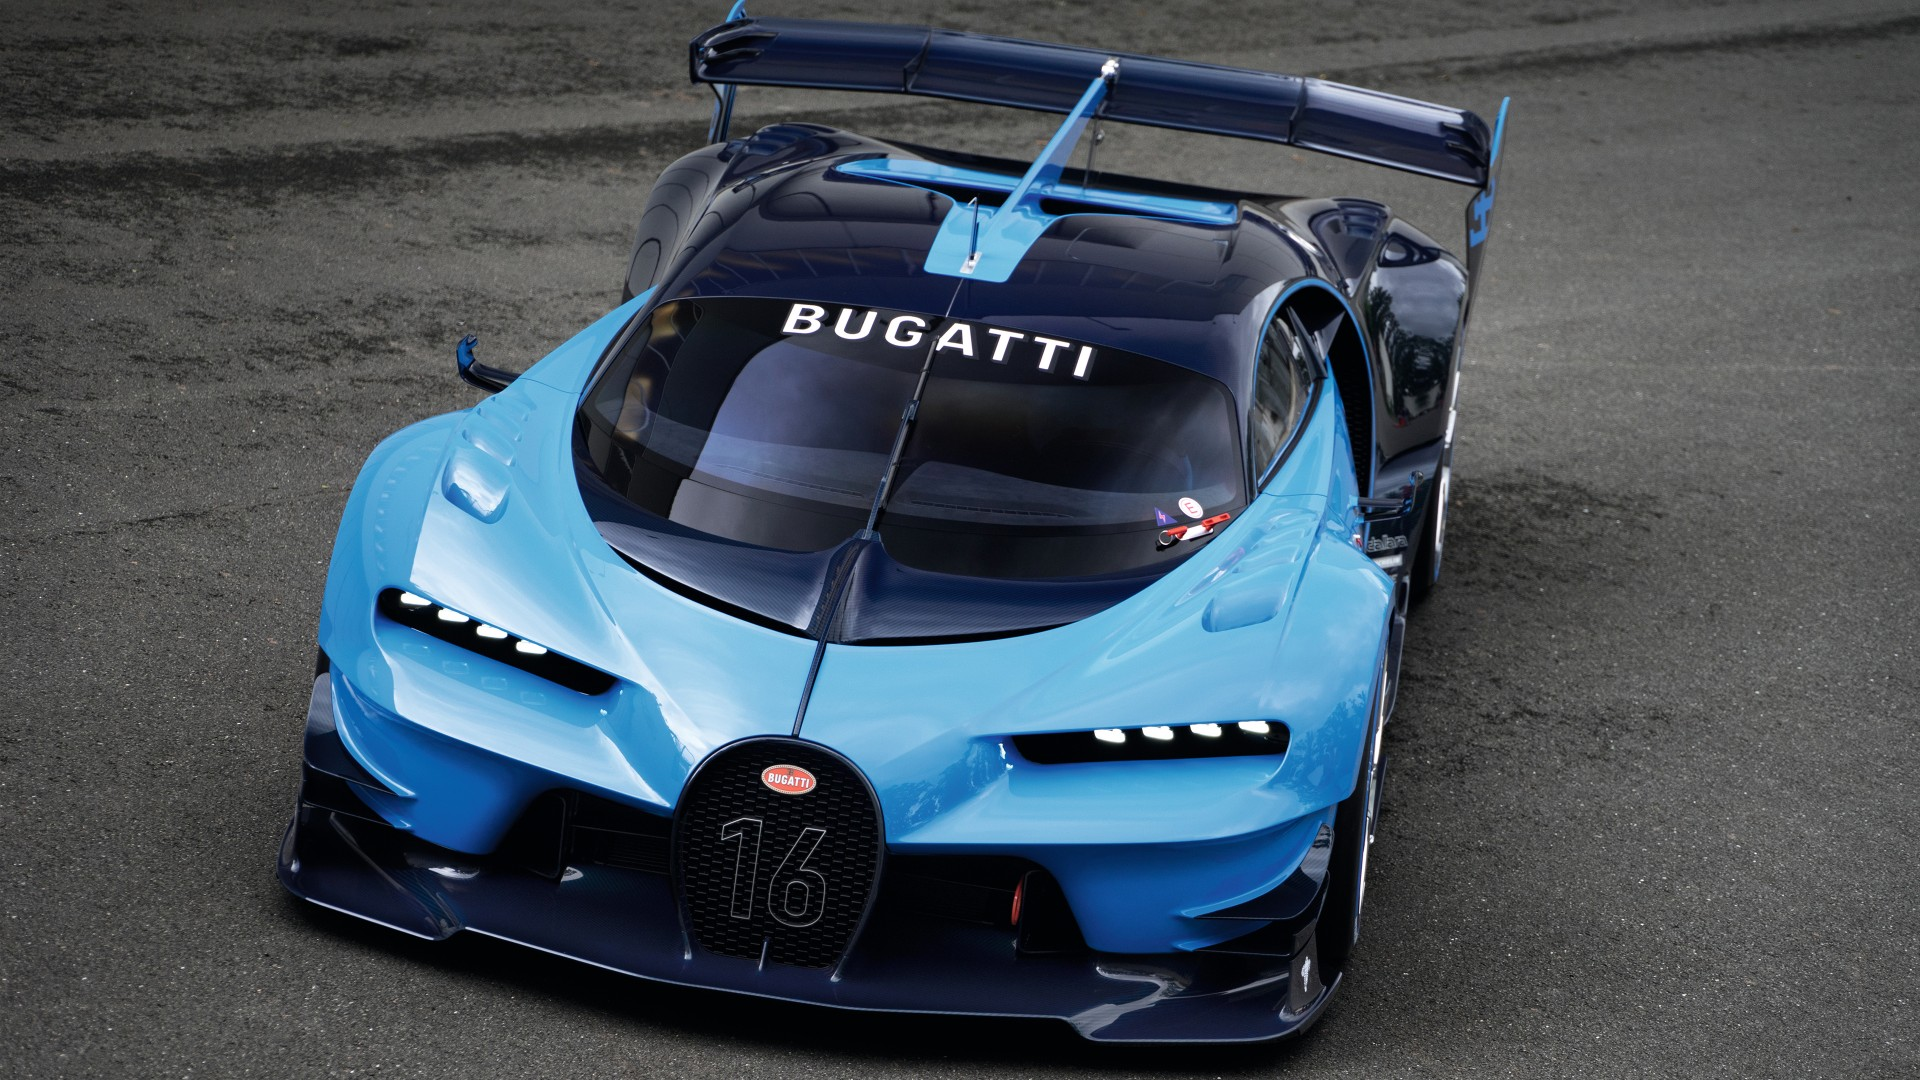 2015 Bugatti Vision Gran Turismo 4 Wallpaper Hd Car